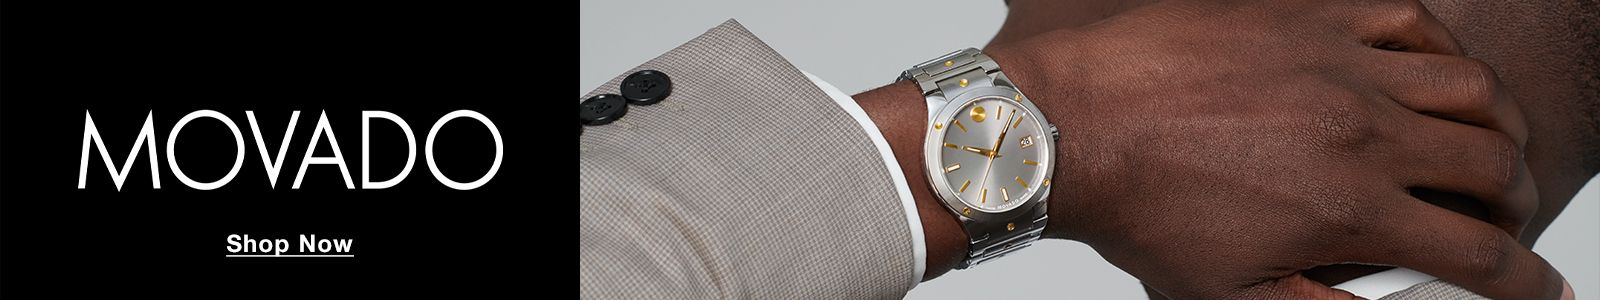 Movado, Shop Now